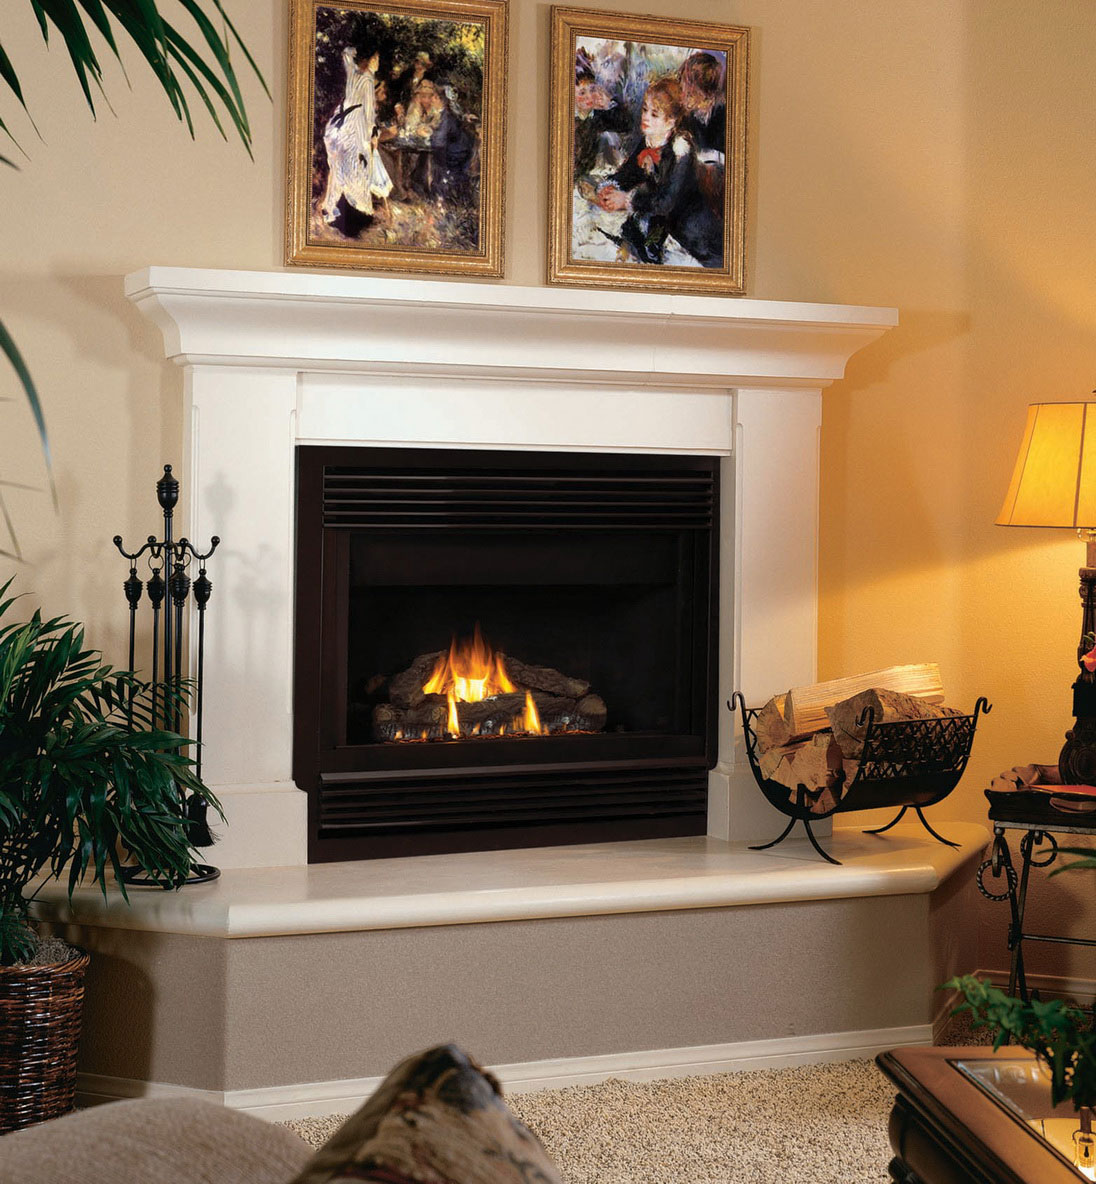 Fireplace Design Idea Unique Fireplace Mantel Designs And Ideas Decor Or Design